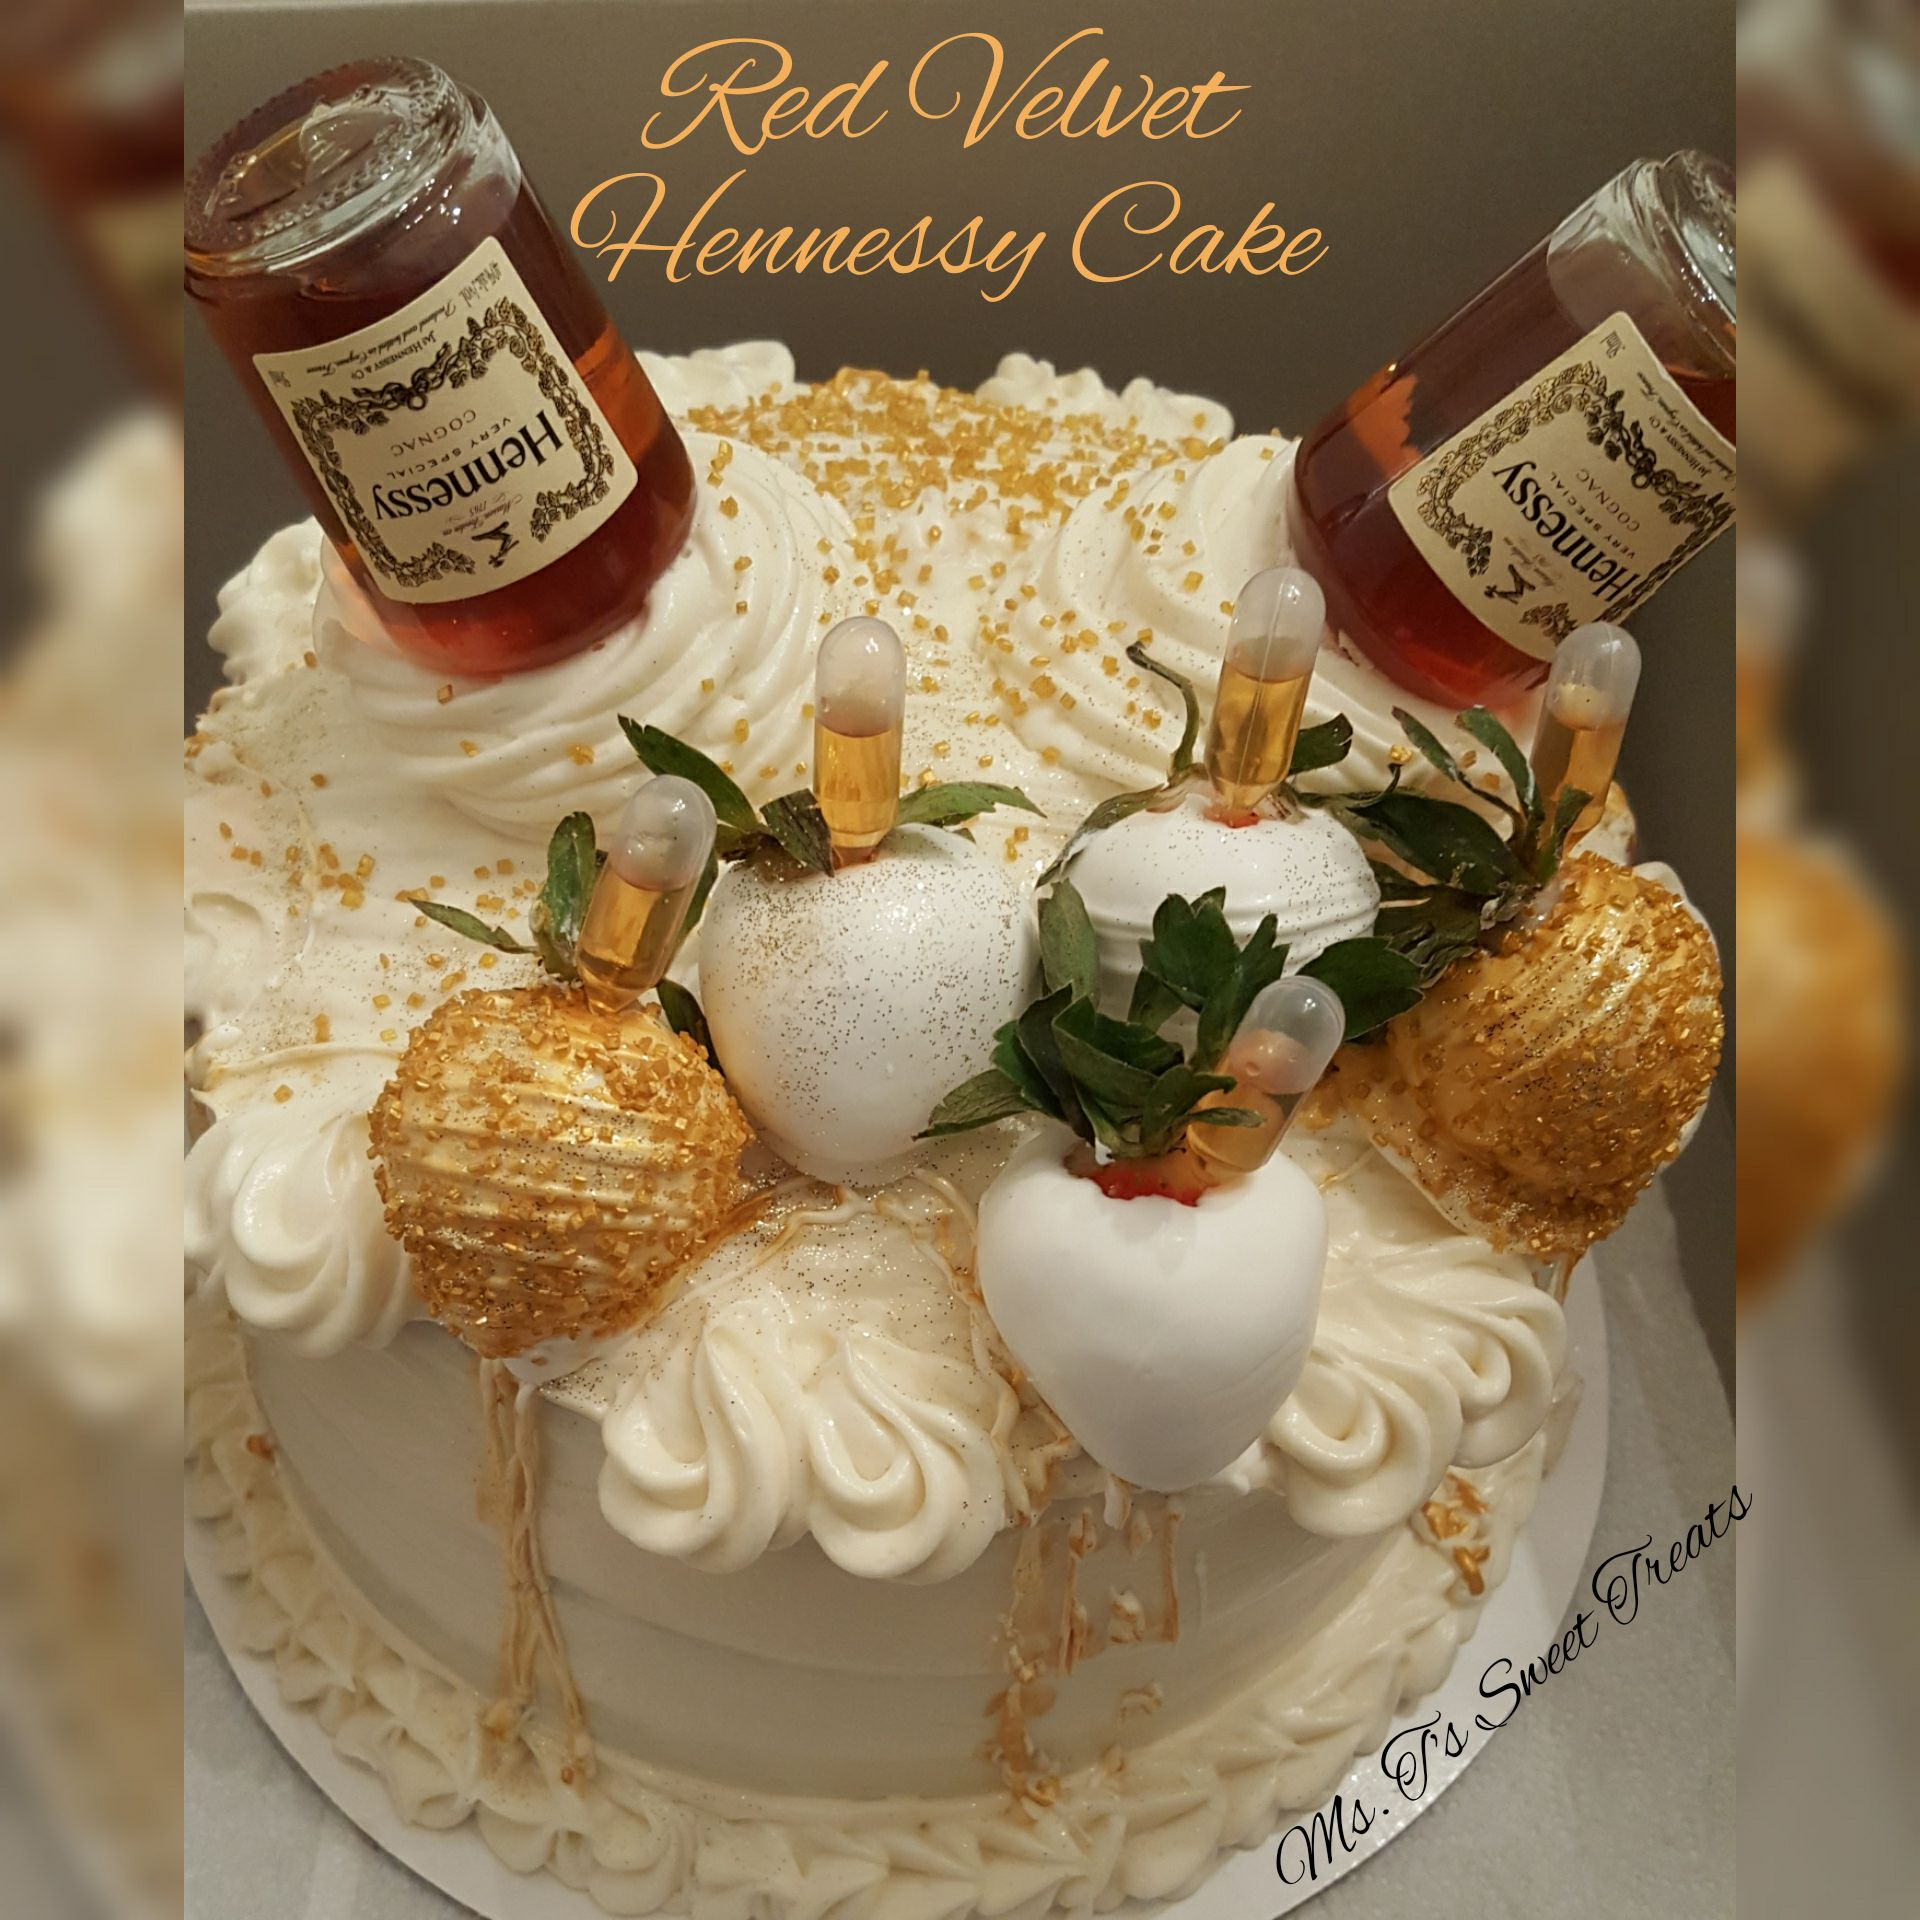 This Is A Red Velvet Hennessy Flavored Cake Topped With